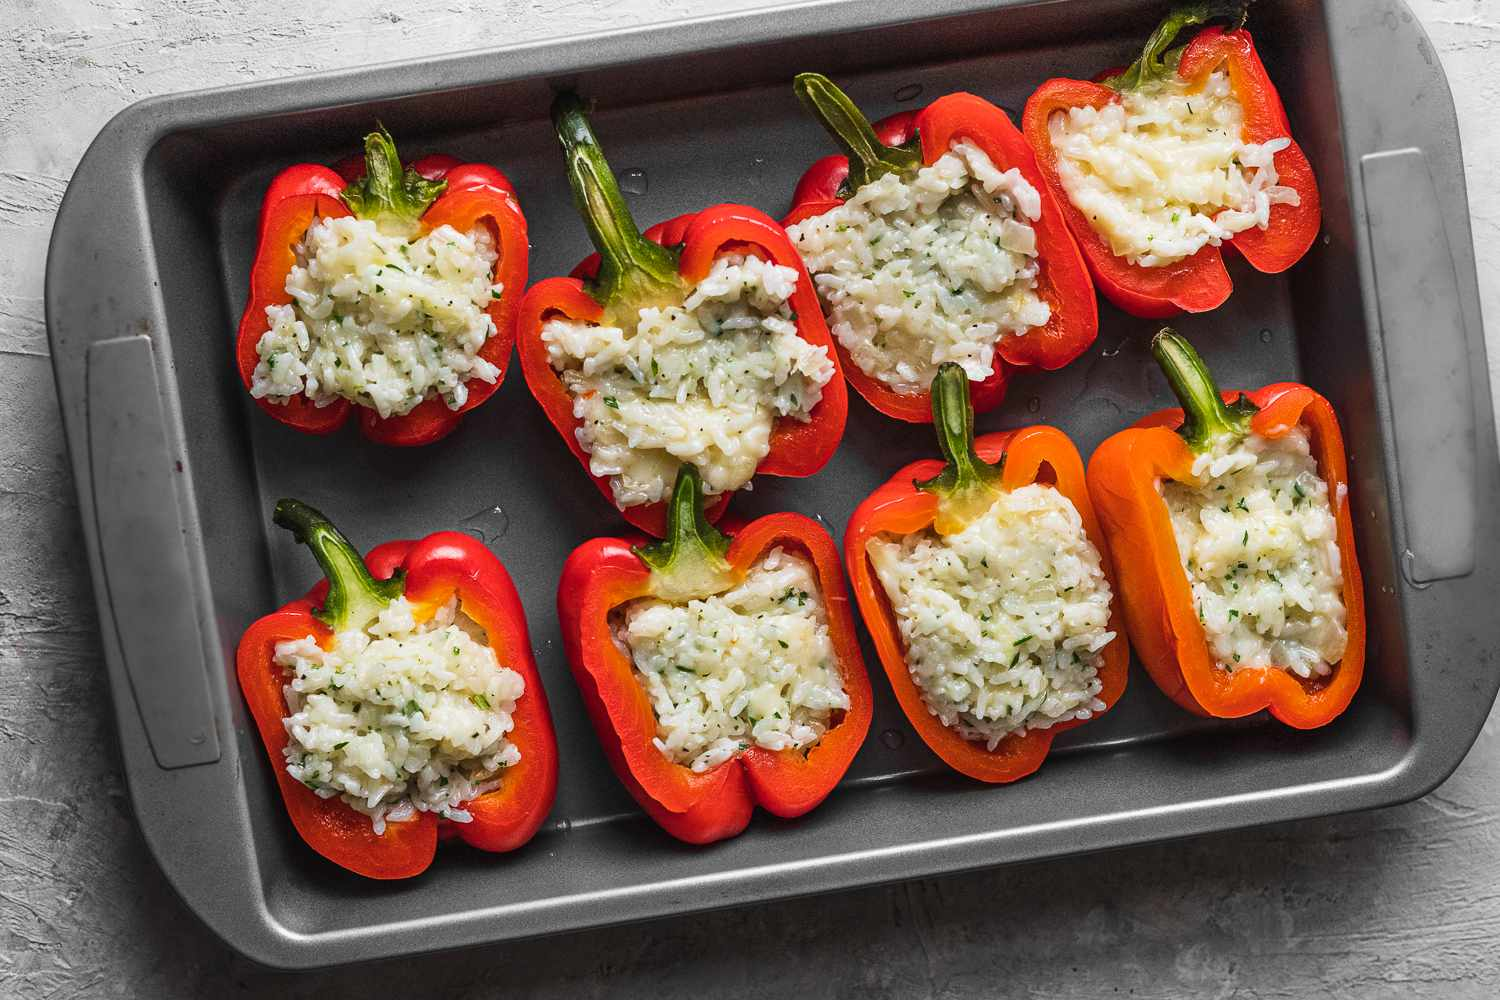 rice and cheese filling inside the bell pepper